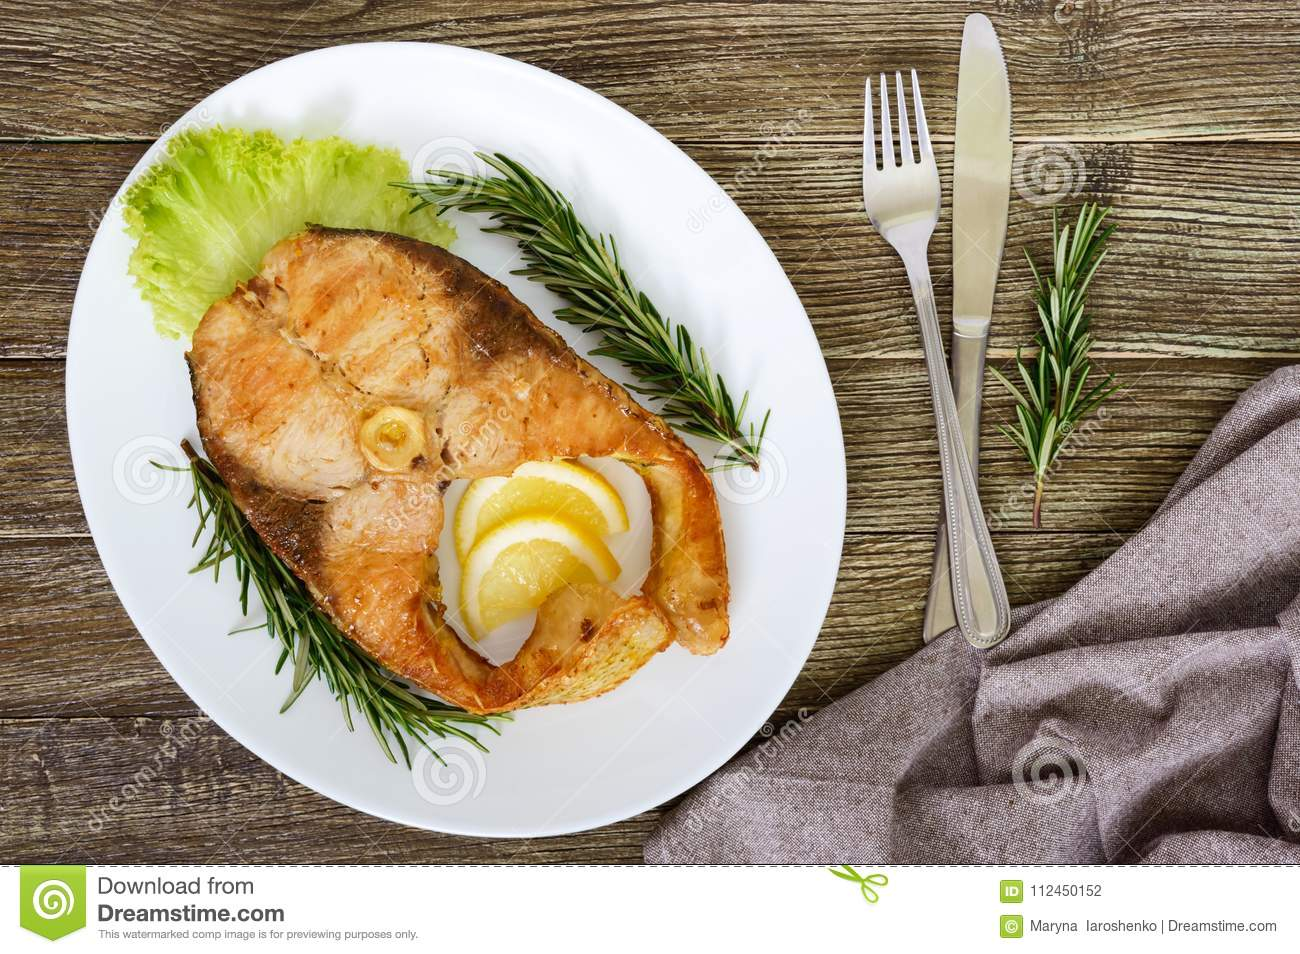 Big roasted carp steak with lemon and rosemary. Top view